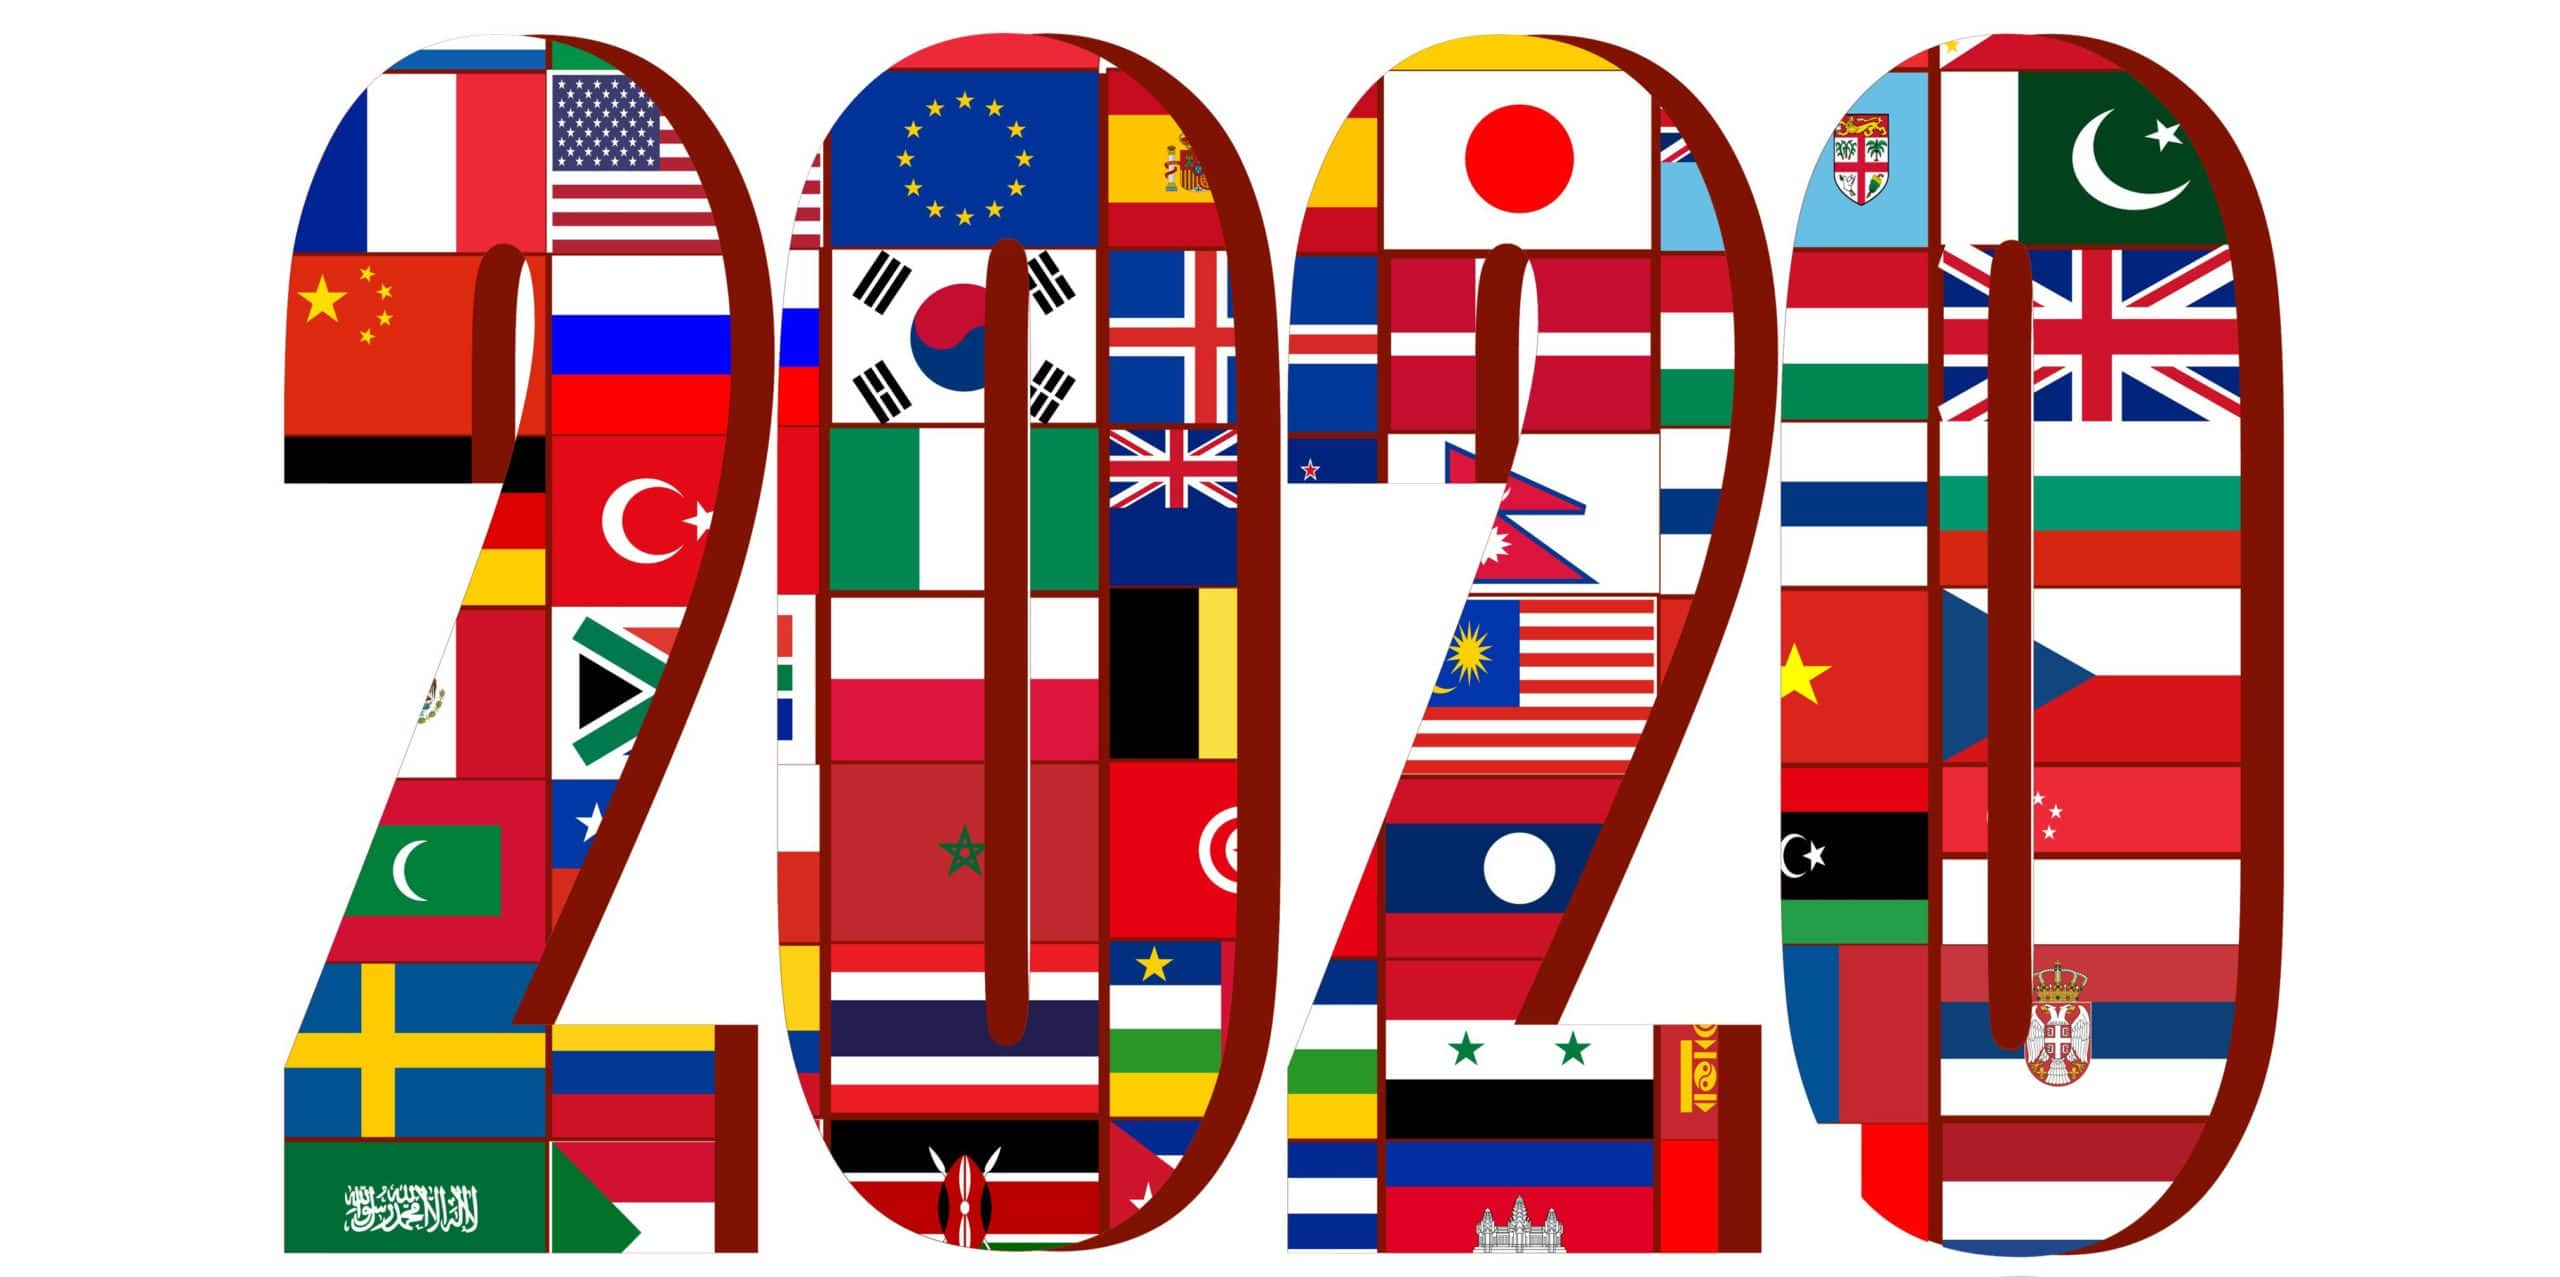 2020 made up of multiple world flags.